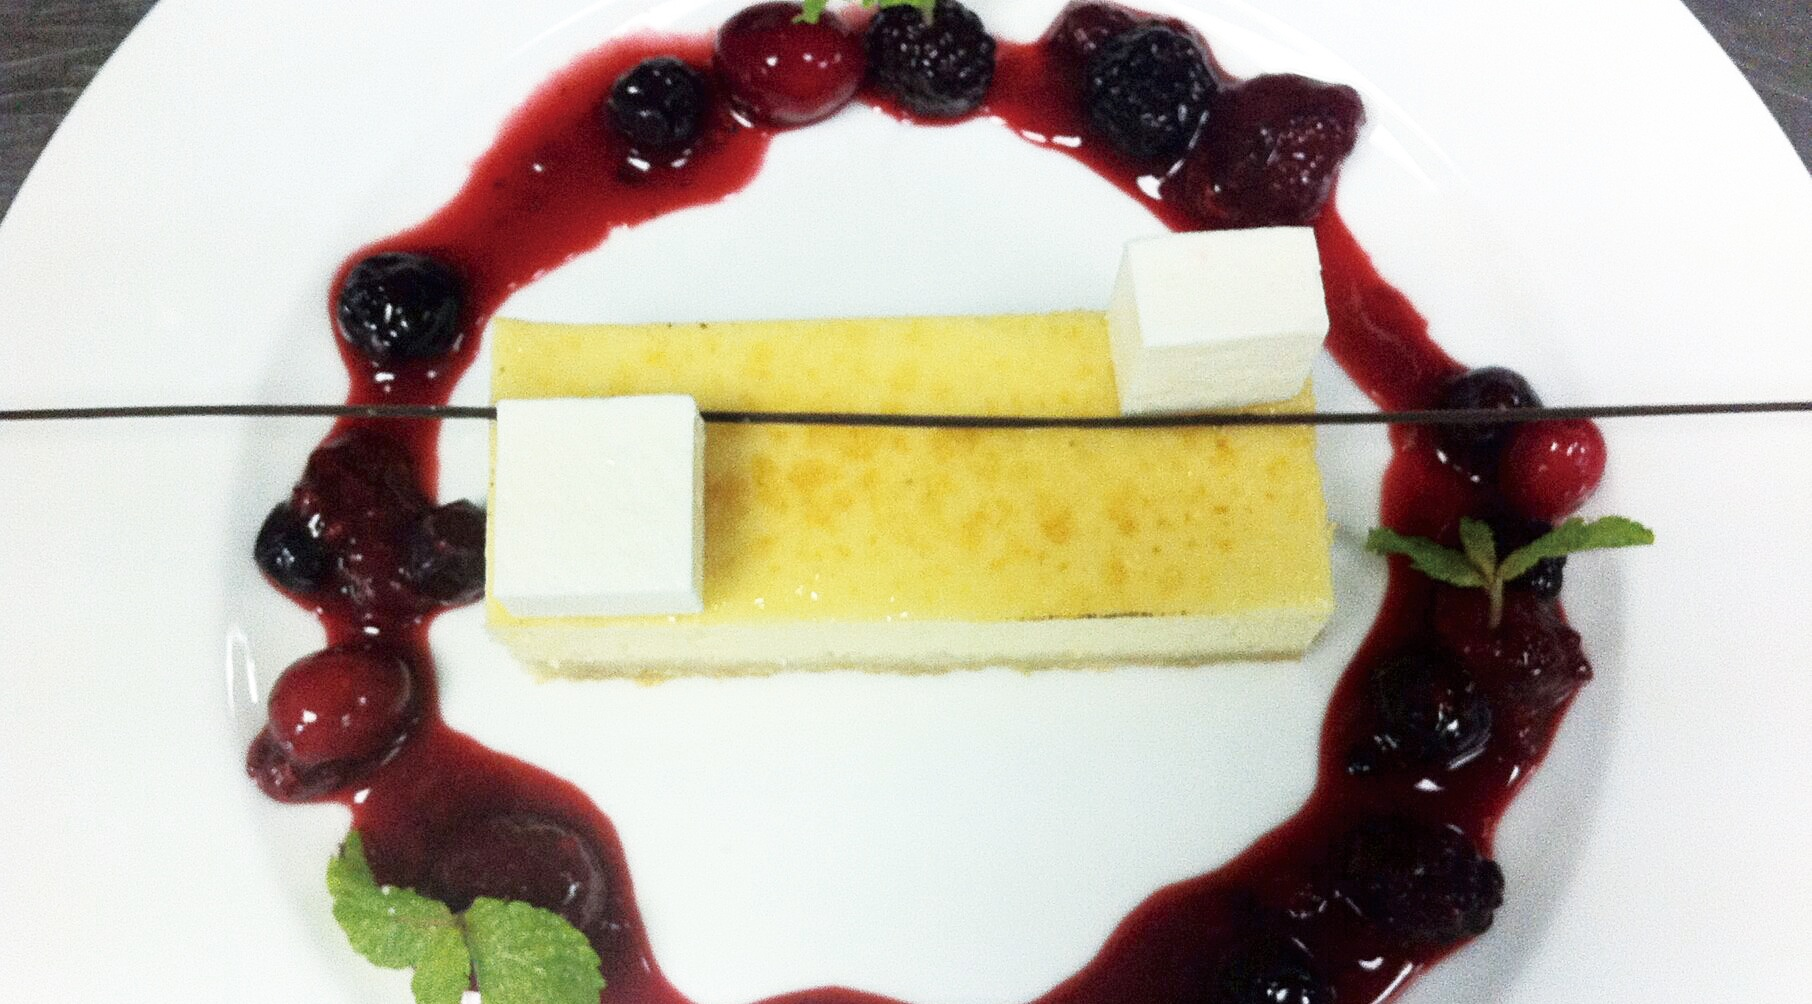 Home cooking: Cheesecake with mixed berry compote